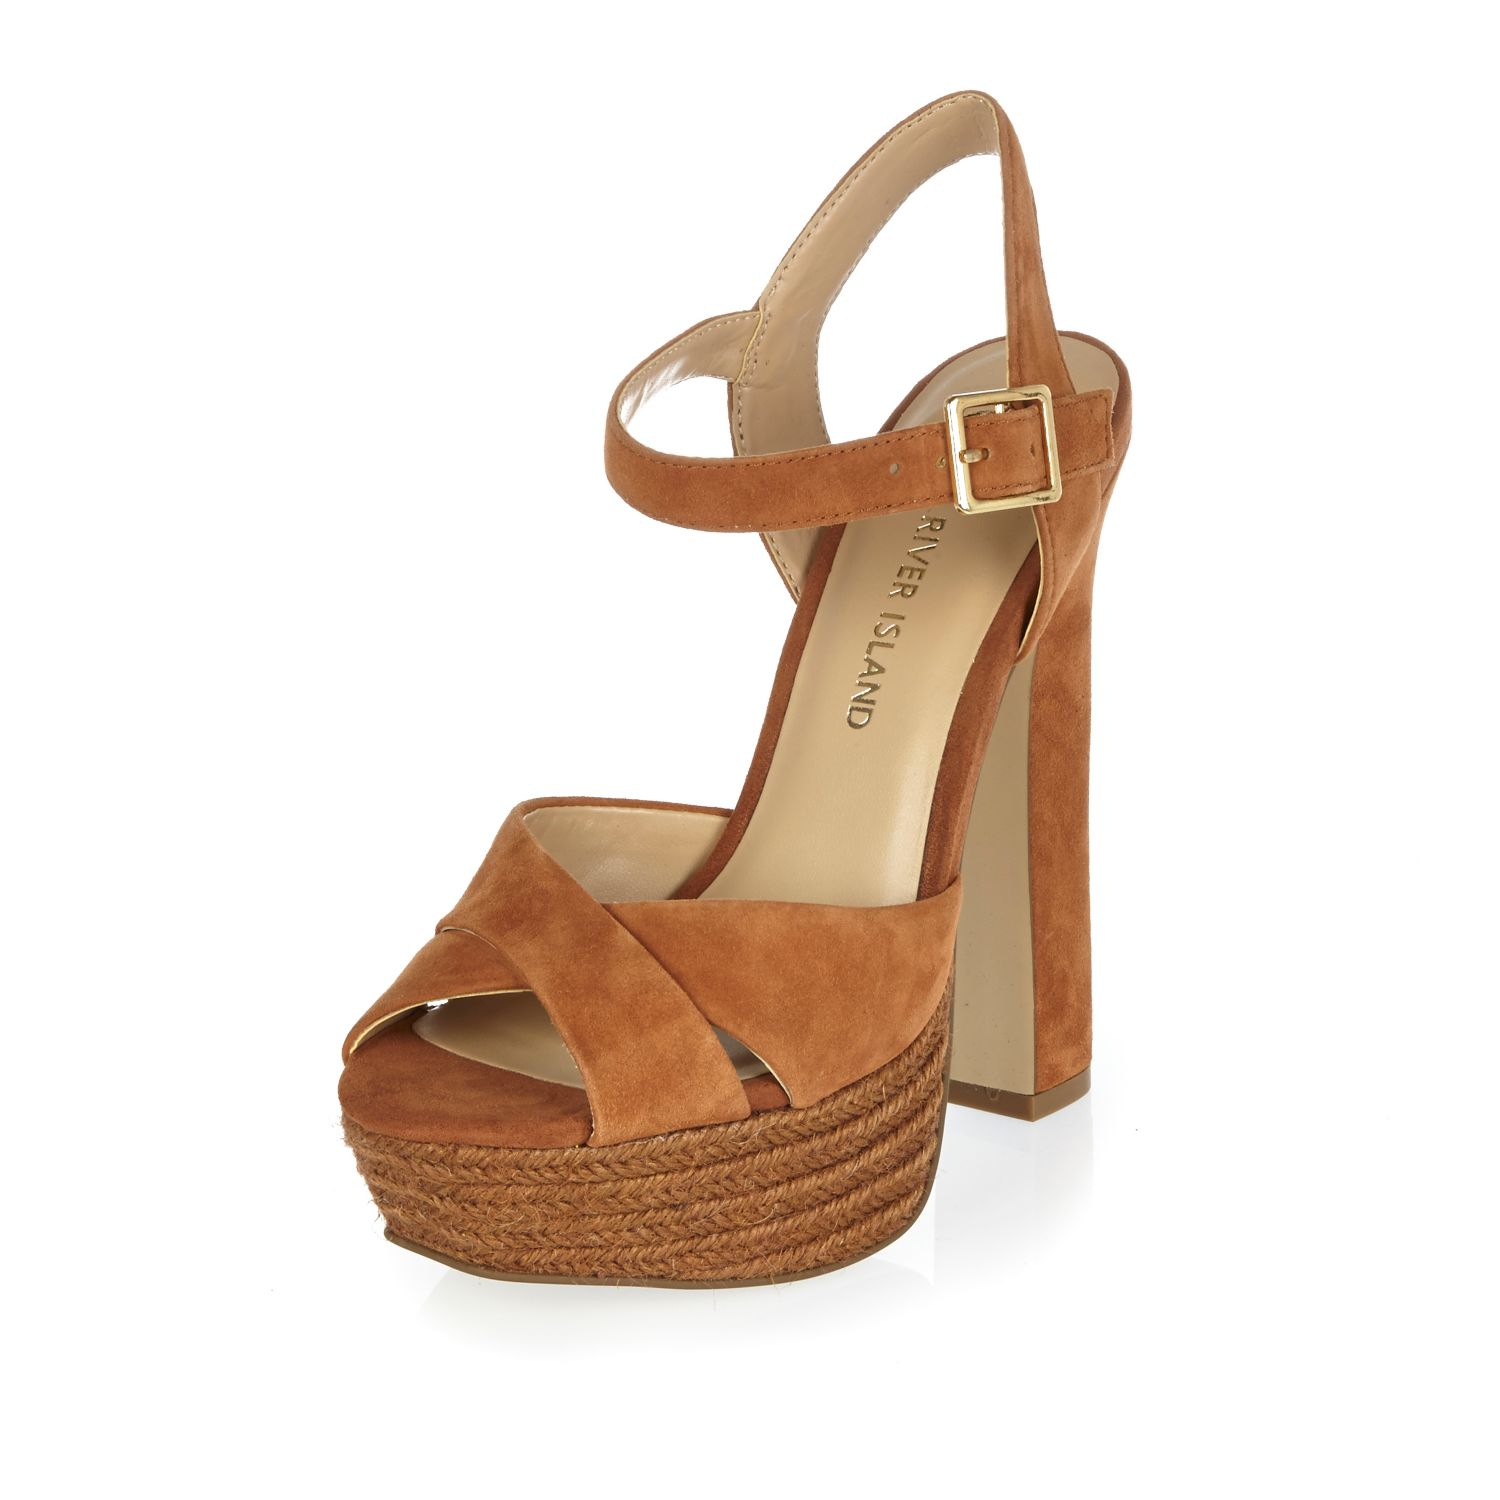 River island Brown Suede Espadrille Platform Heels in Brown | Lyst